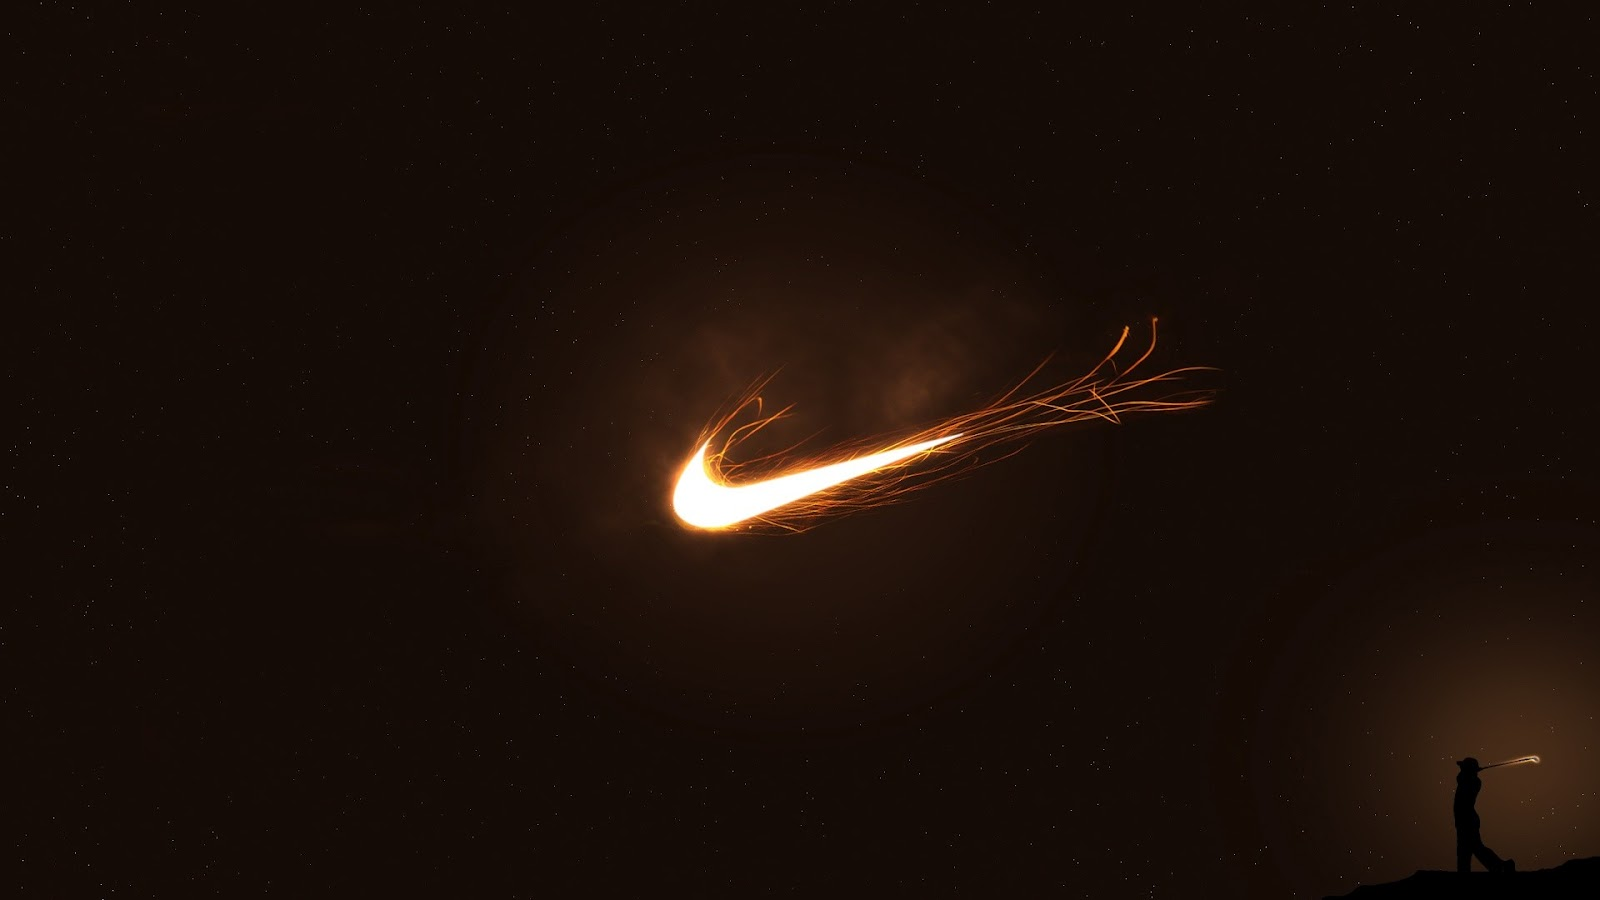 Nike Brand Logo Minimal HD Wallpapers| HD Wallpapers ...